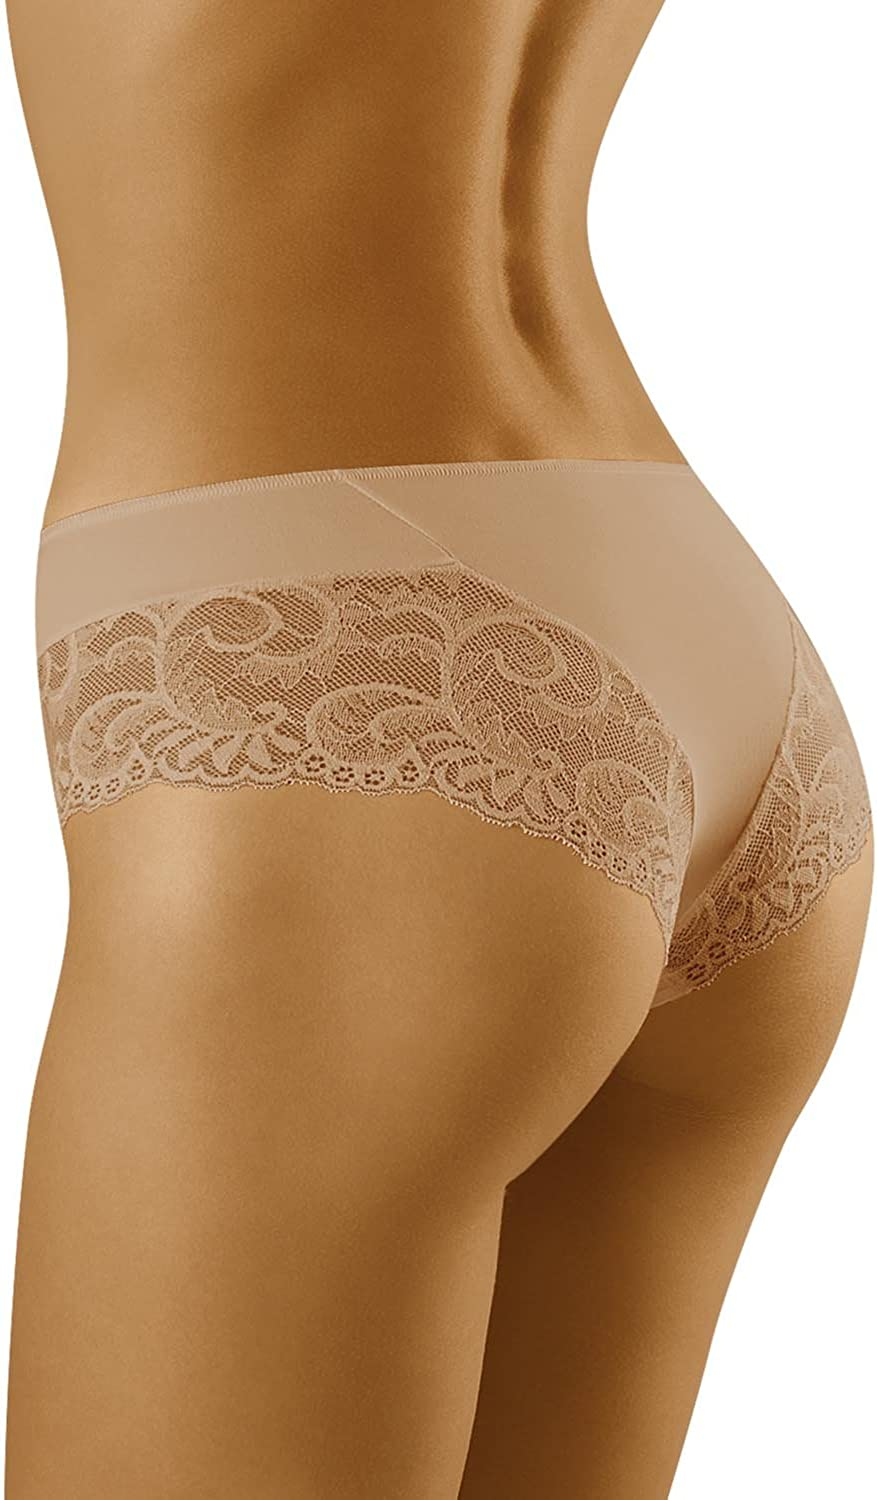 Wolbar smooth woman lace shorts WB403 Panties Comfortable Underwear,Top Quality